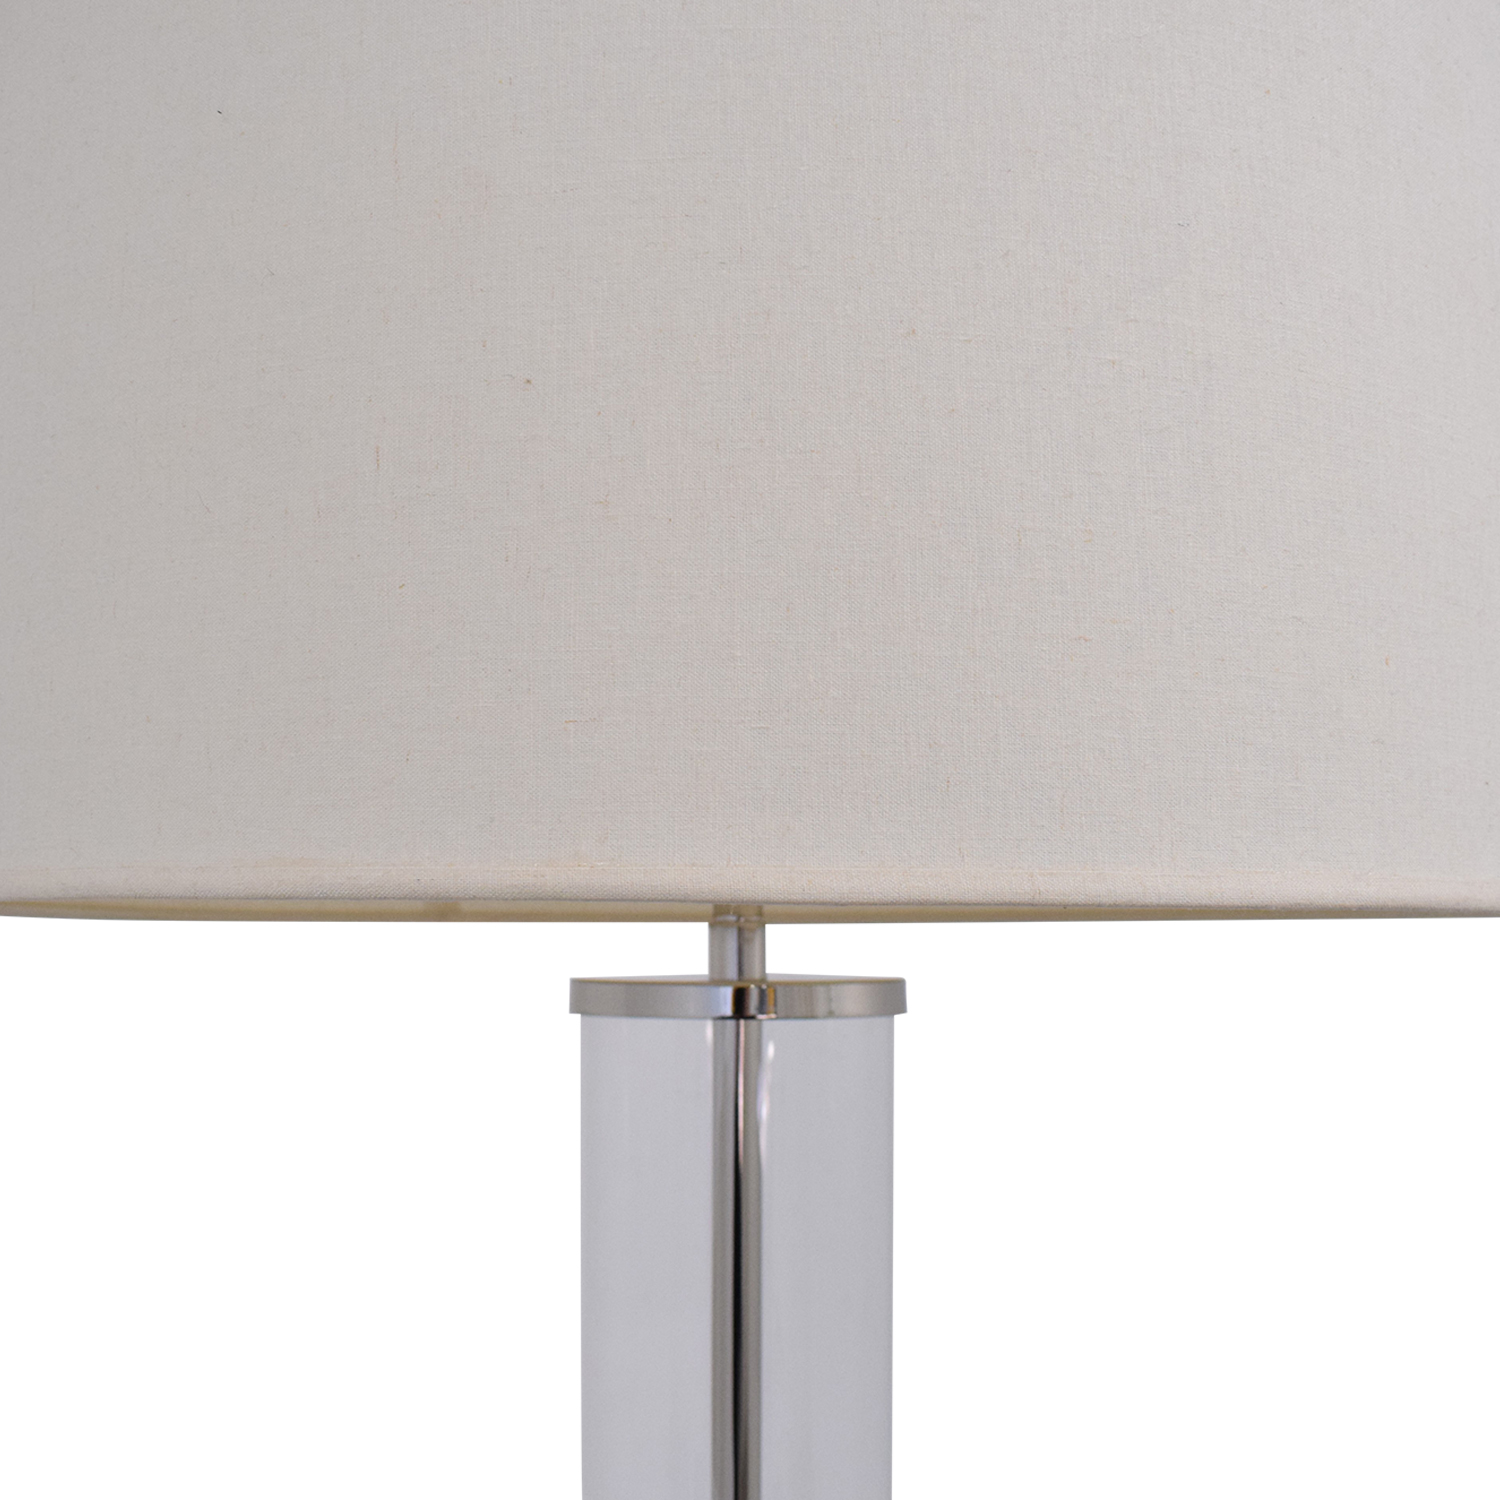 buy Restoration Hardware Restoration Hardware French Column Glass Floor Lamp with Shade online